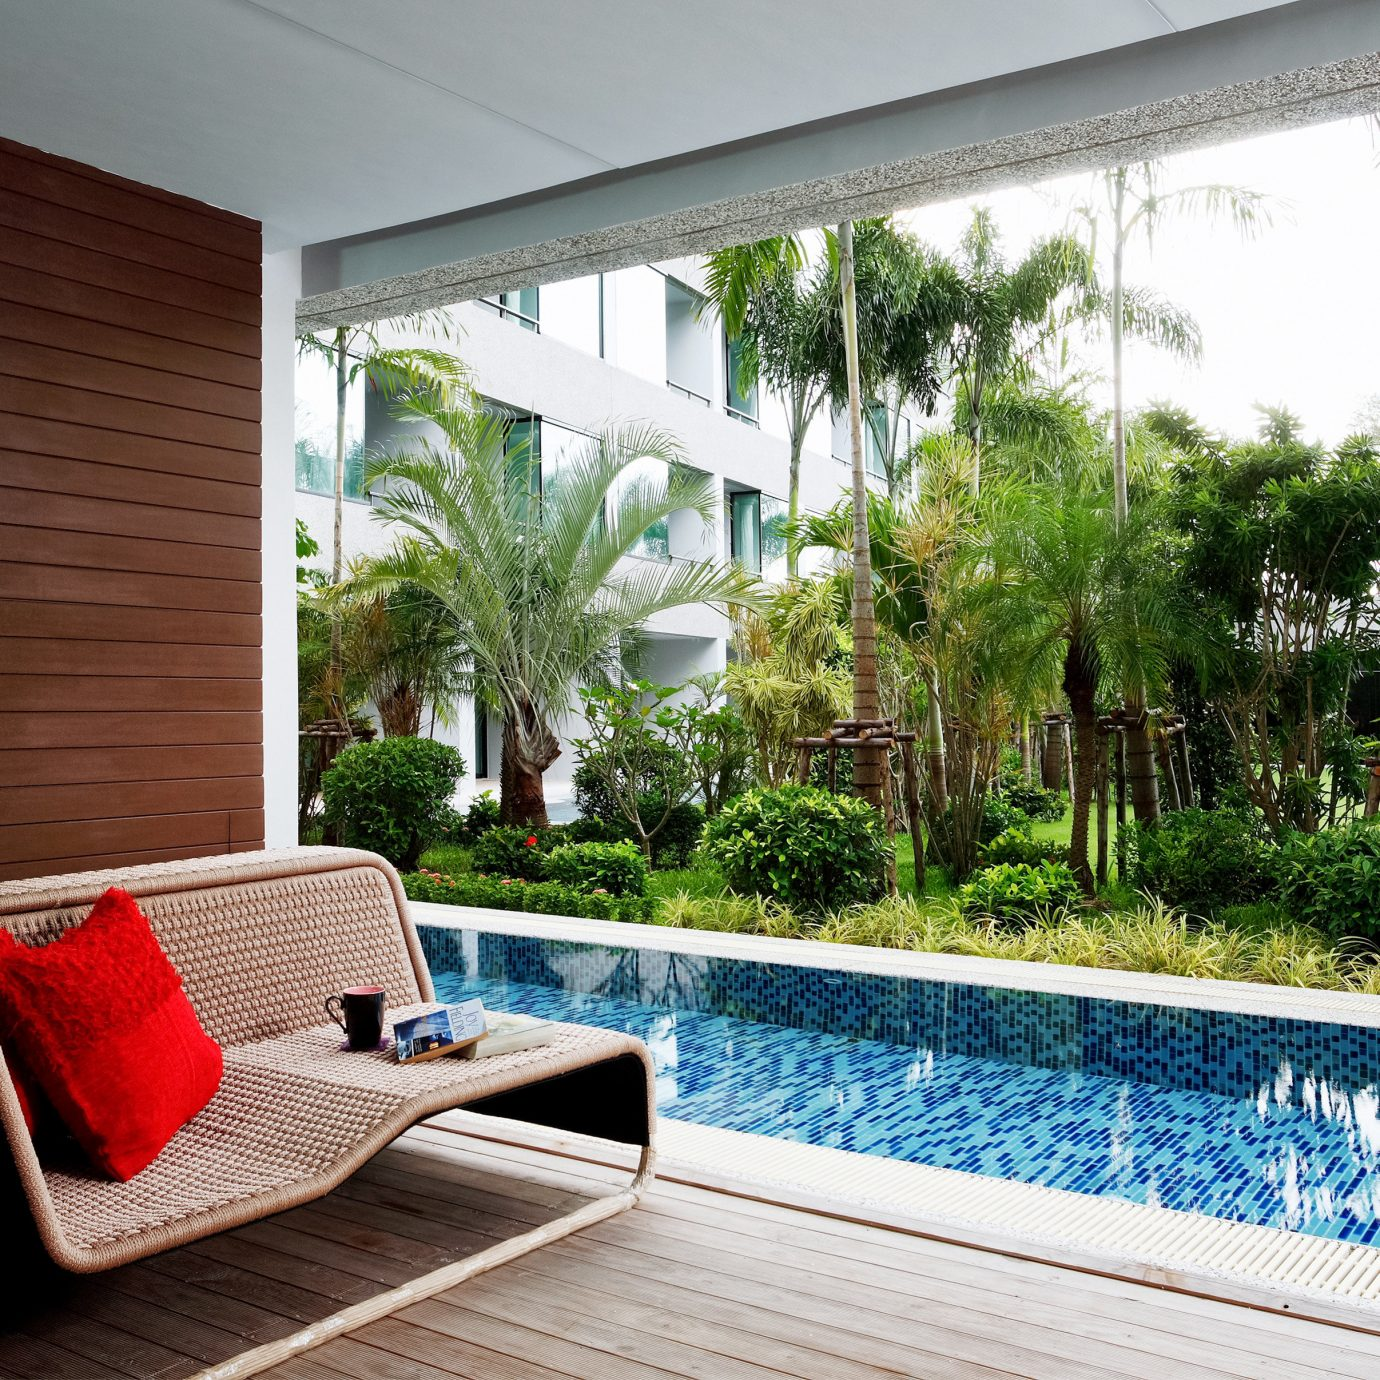 Beach Bedroom Patio Pool Resort swimming pool property condominium house home Villa backyard